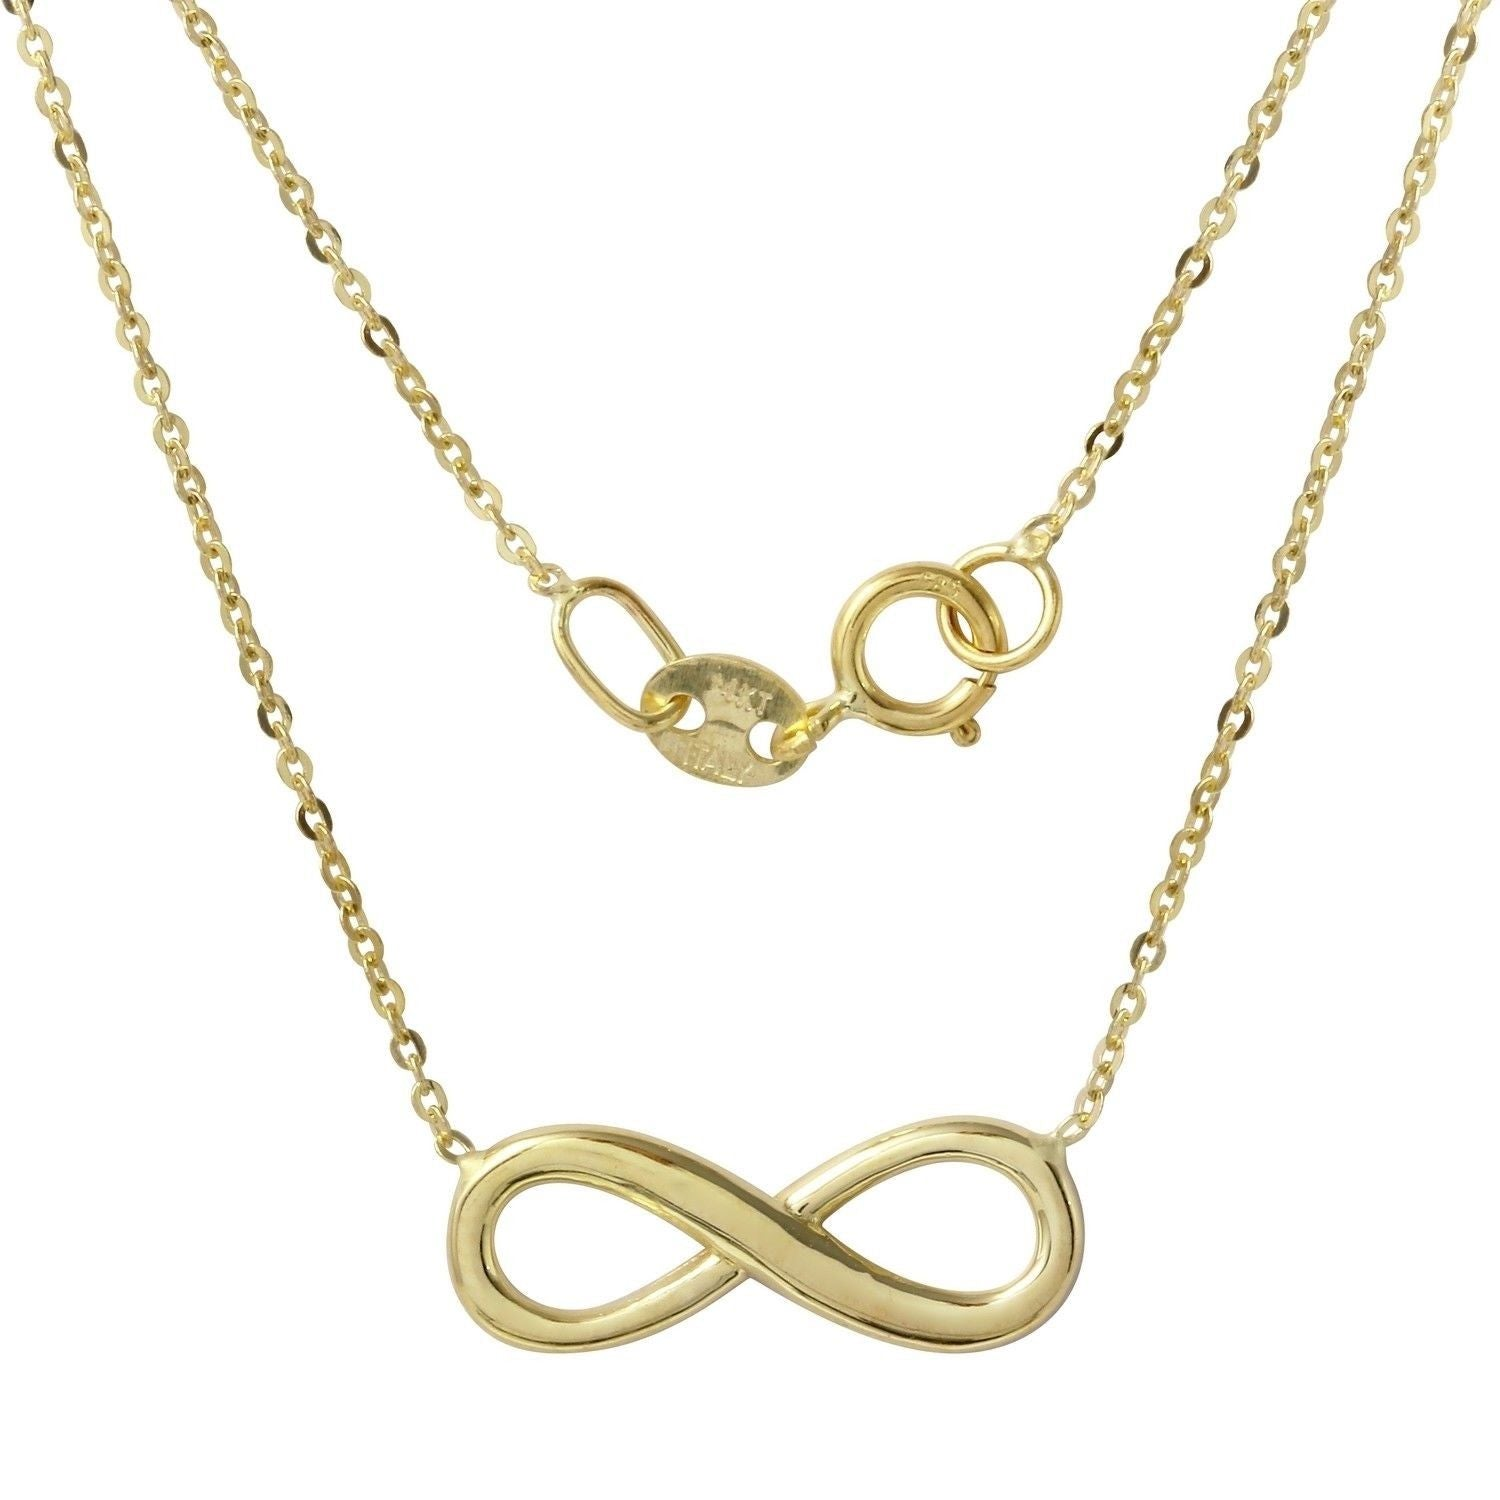 14k Yellow Gold Italian Diamond-Cut Rolo Chain Infinity Necklace, 16